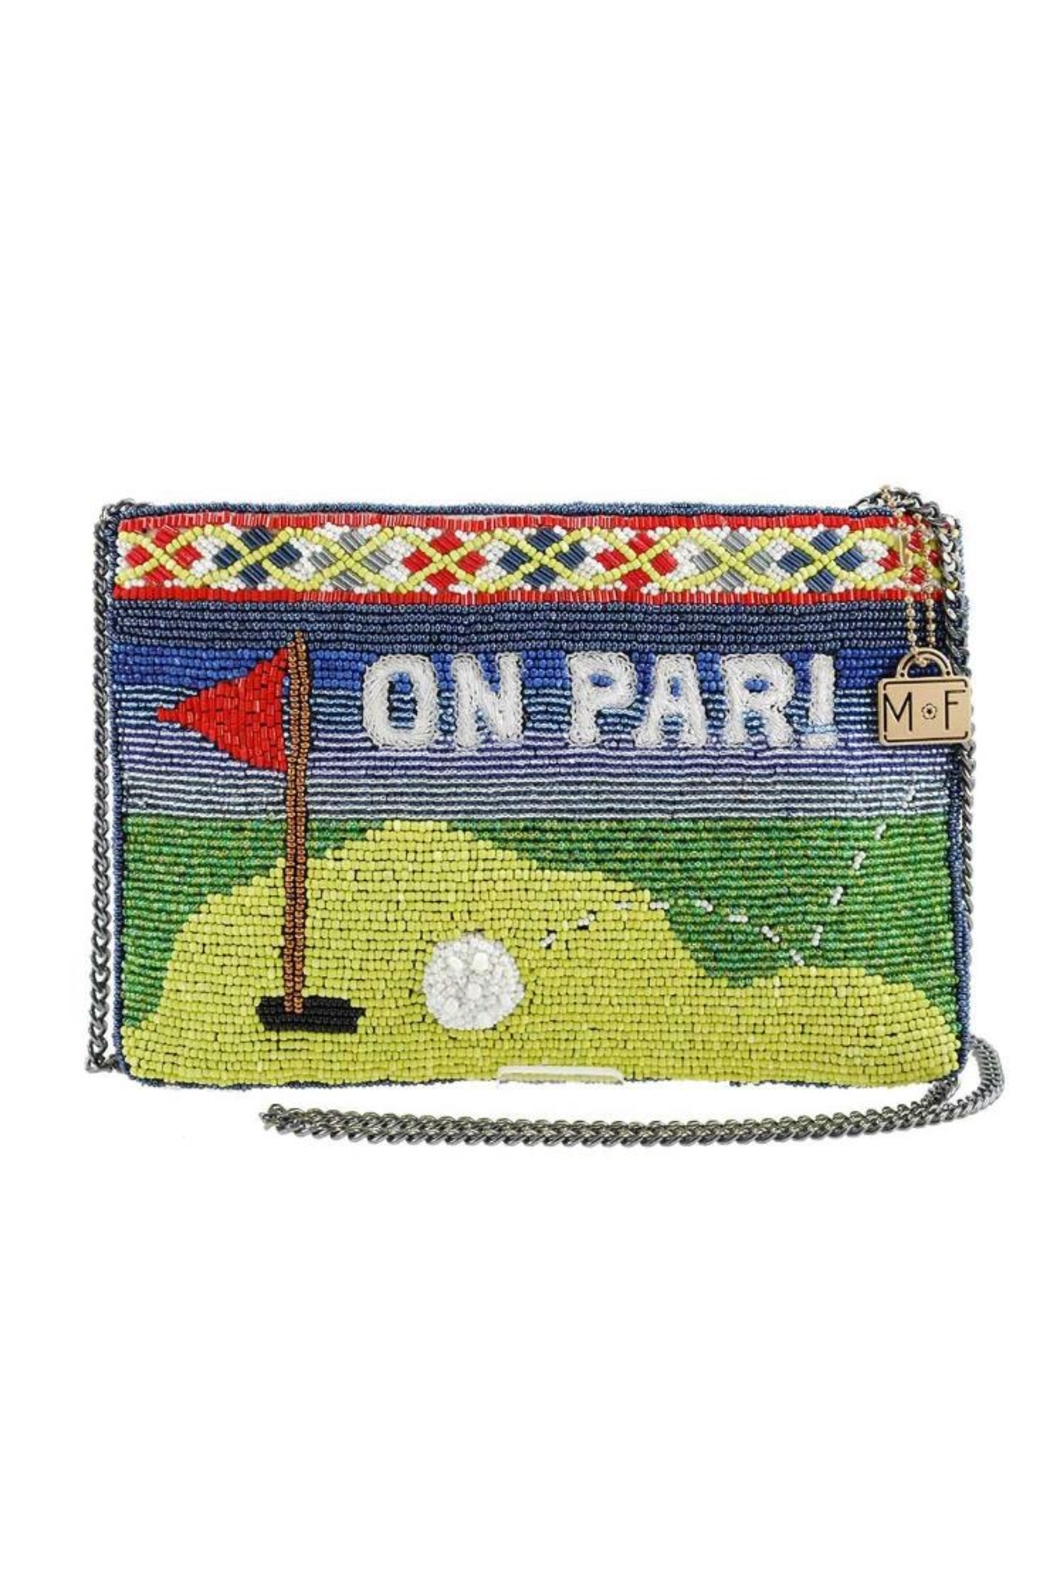 Mary Frances Par-Tee Beaded Clutch - Main Image